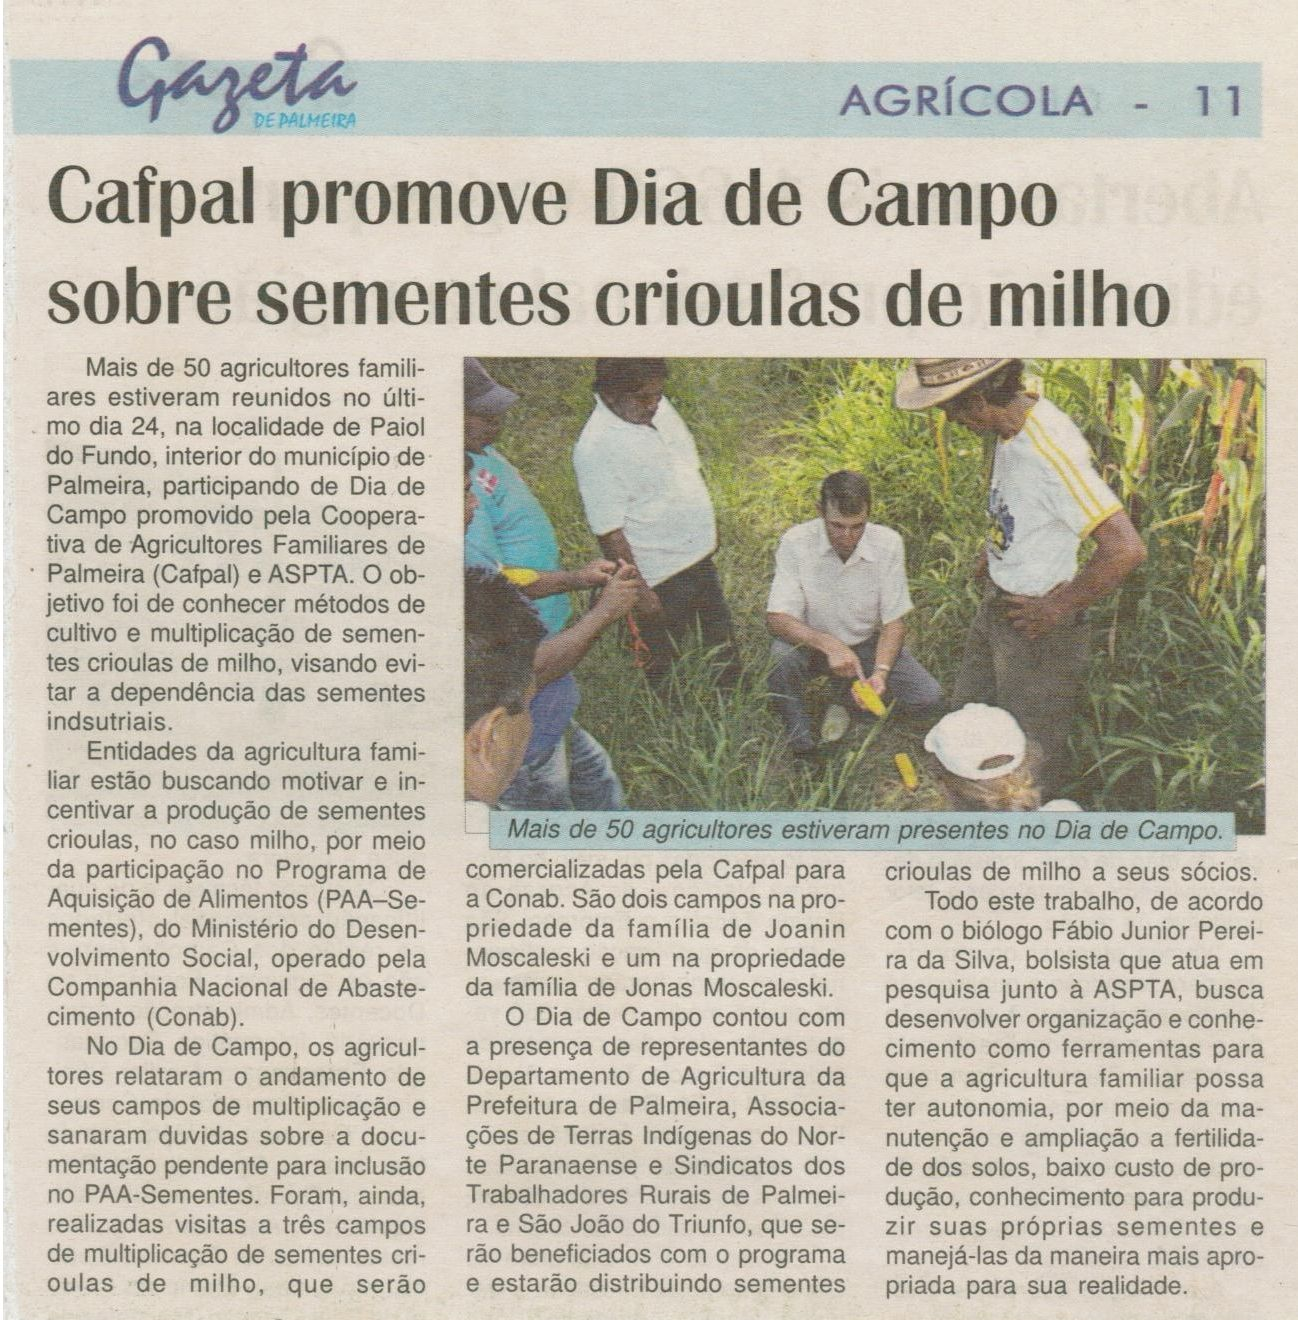 gazeta de palemira jan2012